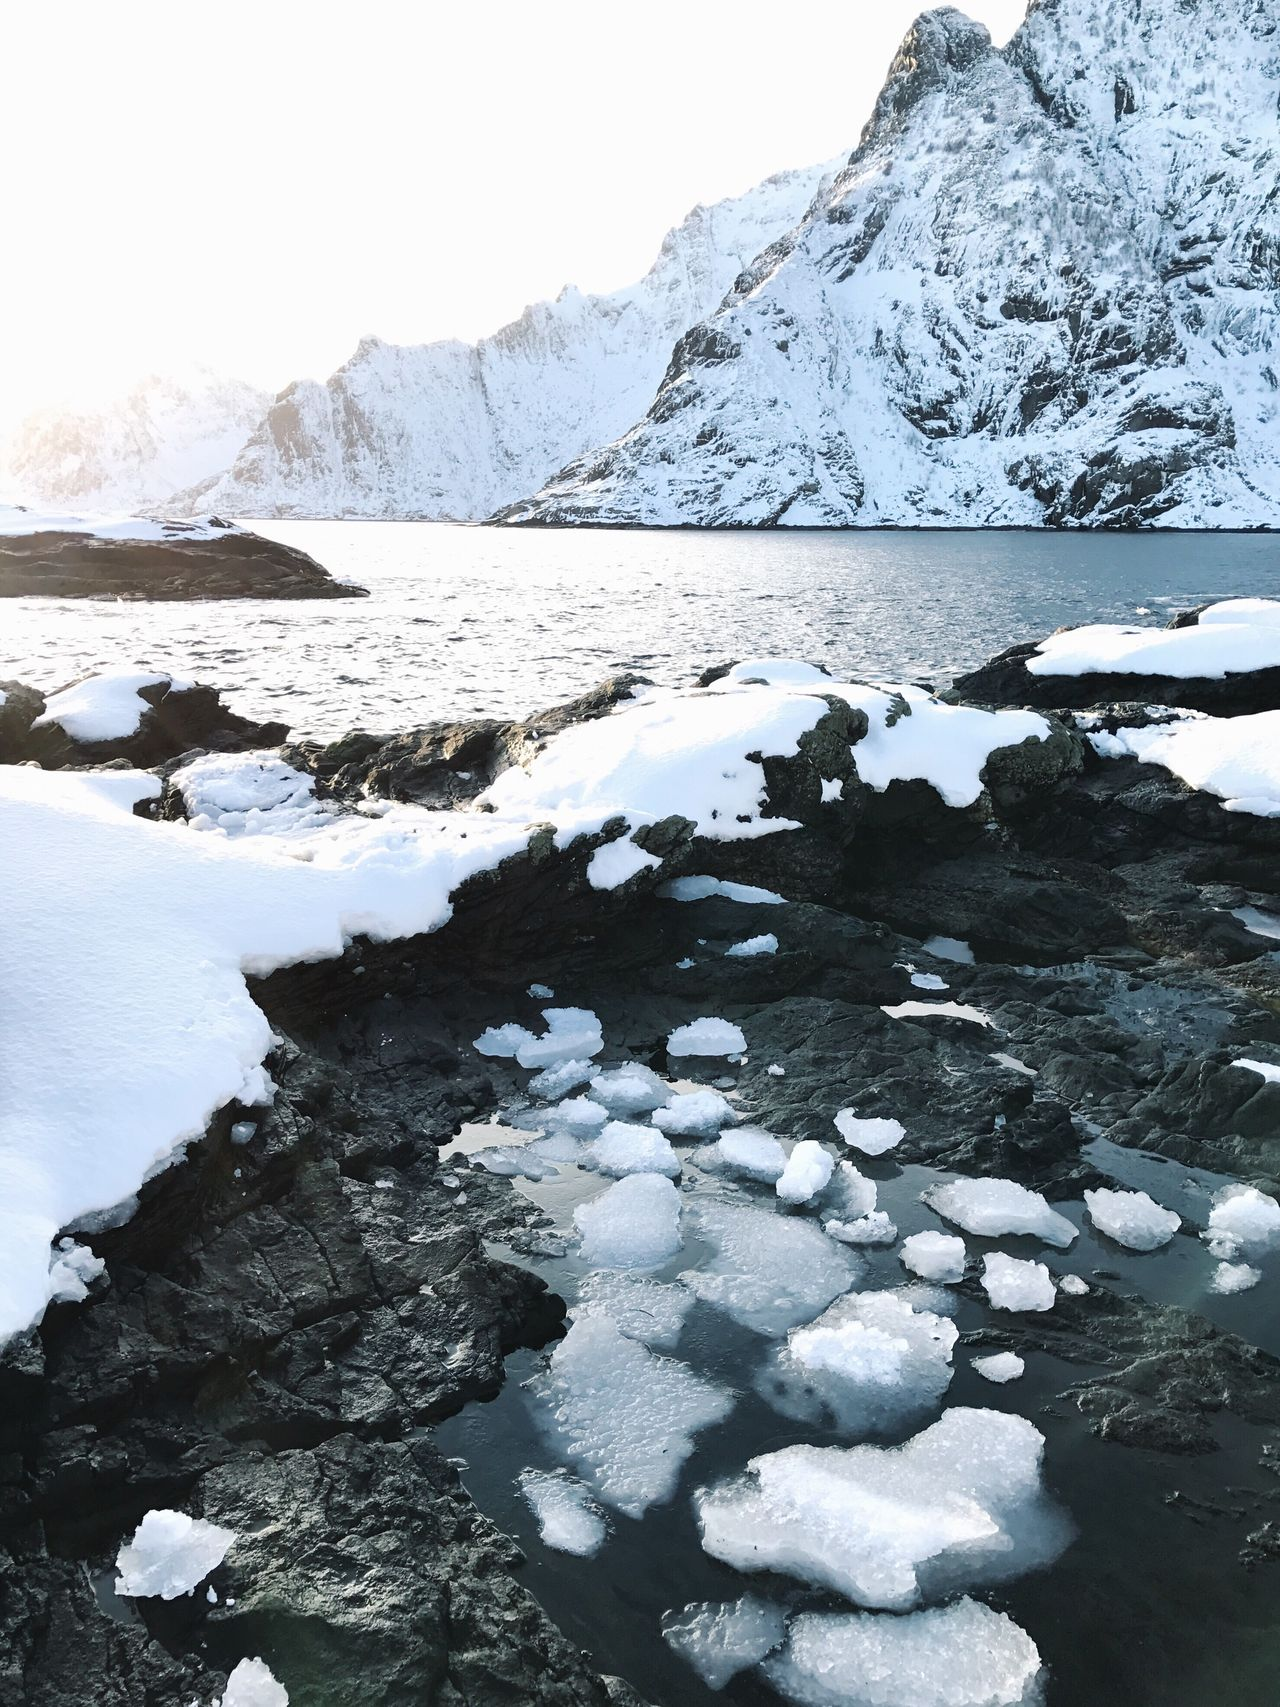 Ice Water Nature Frozen Snow Cold Temperature Mountain Winter Beauty In Nature Landscape Scenics Sky Polar Climate Outdoors Glacier Global Warming Cold No People Day Glacial The End Of The World Norway Lofoten Islands